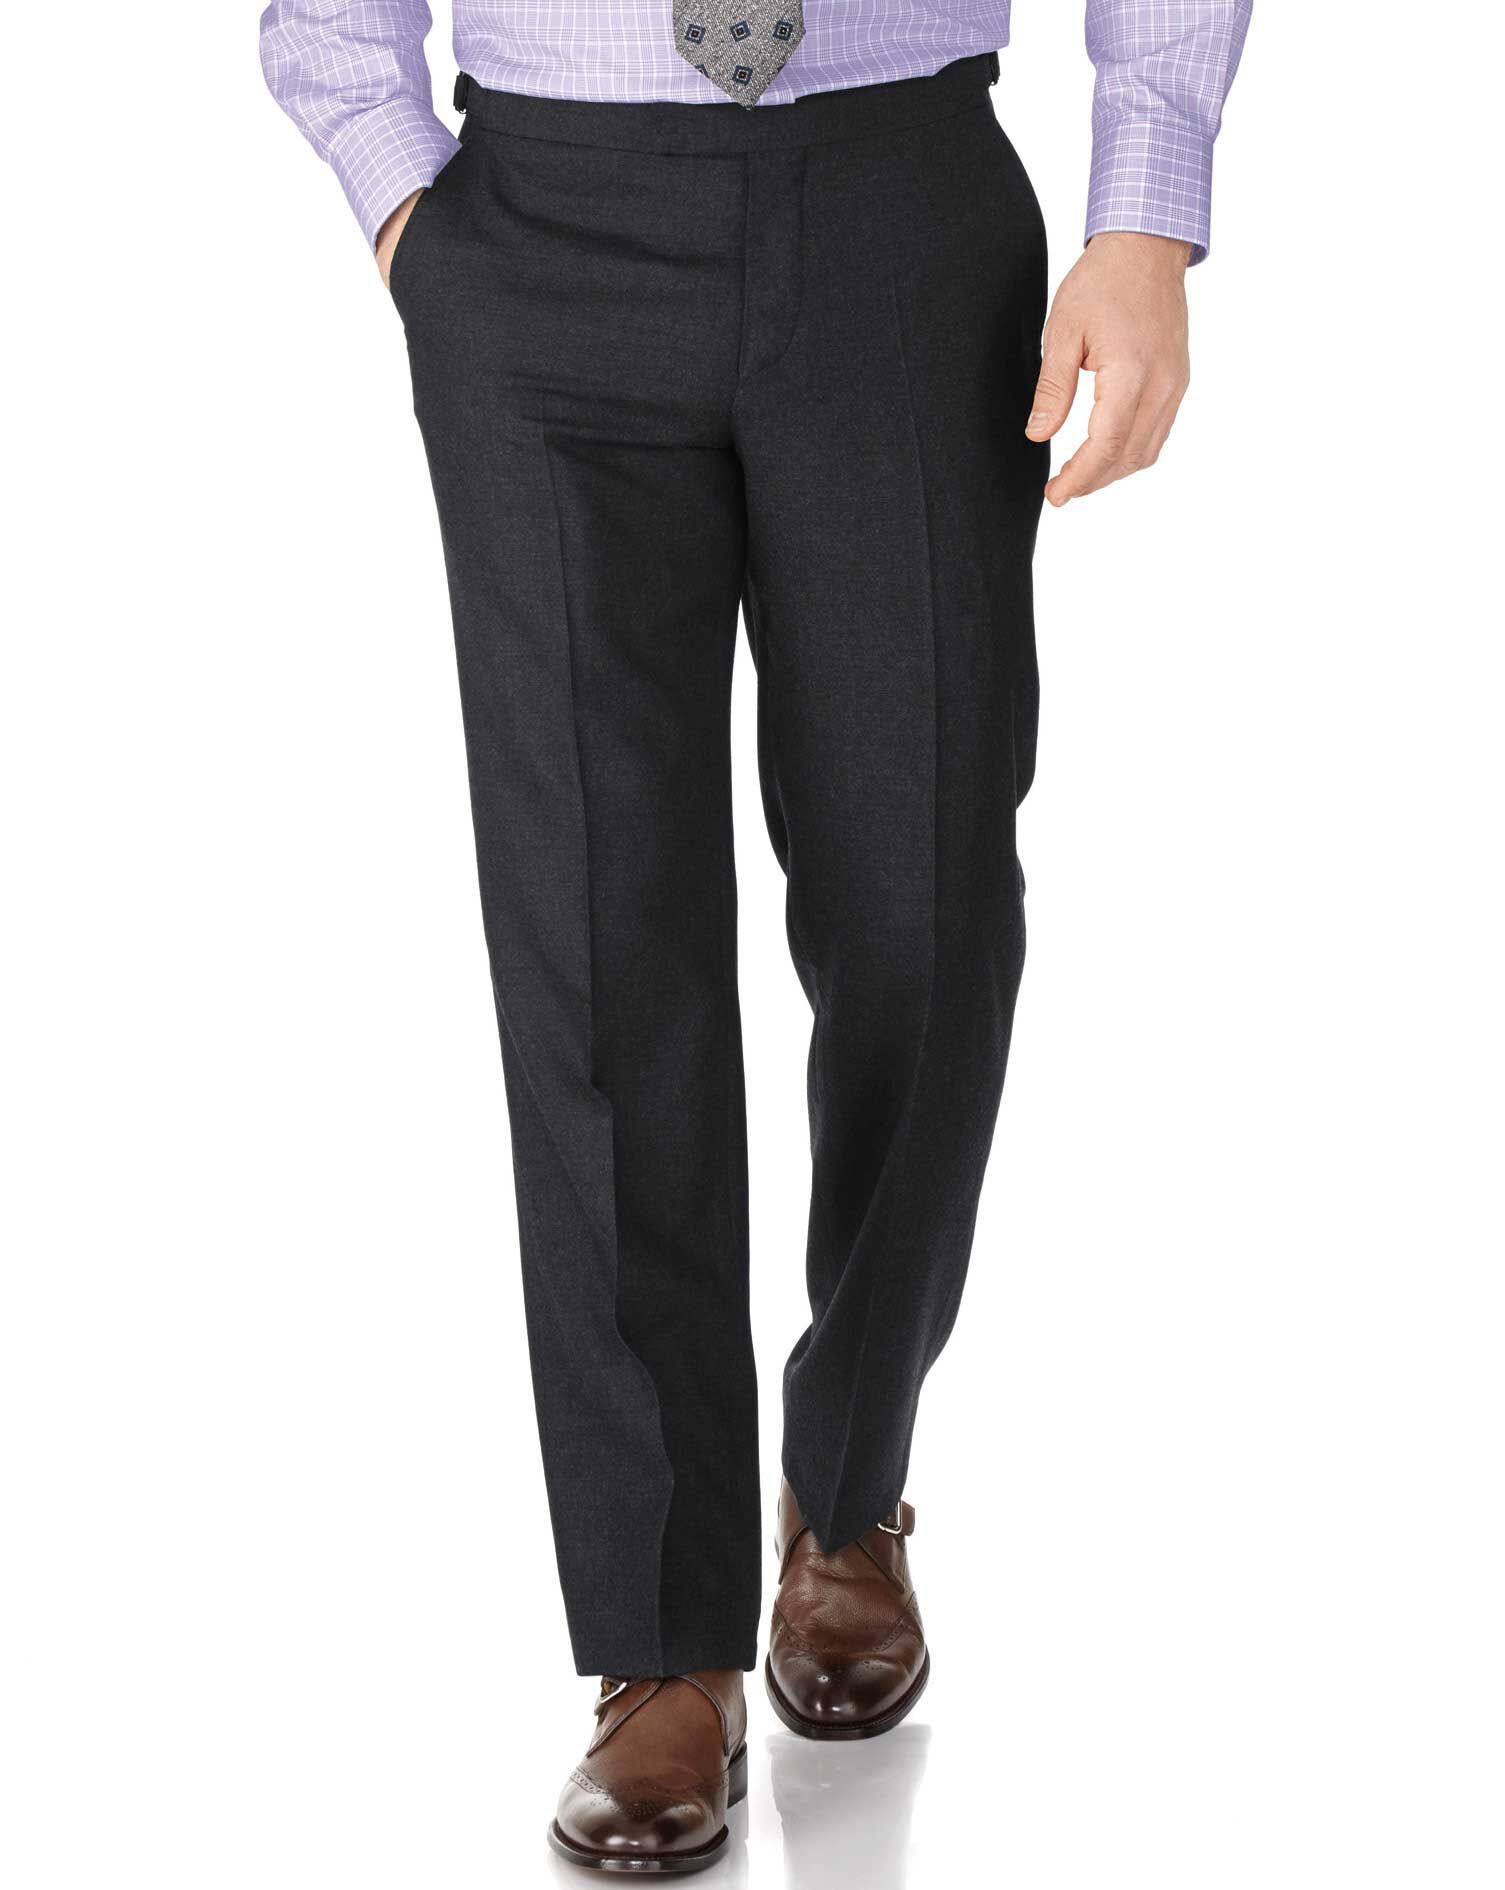 Charcoal Classic Fit British Serge Luxury Suit Trousers Size W32 L32 by Charles Tyrwhitt